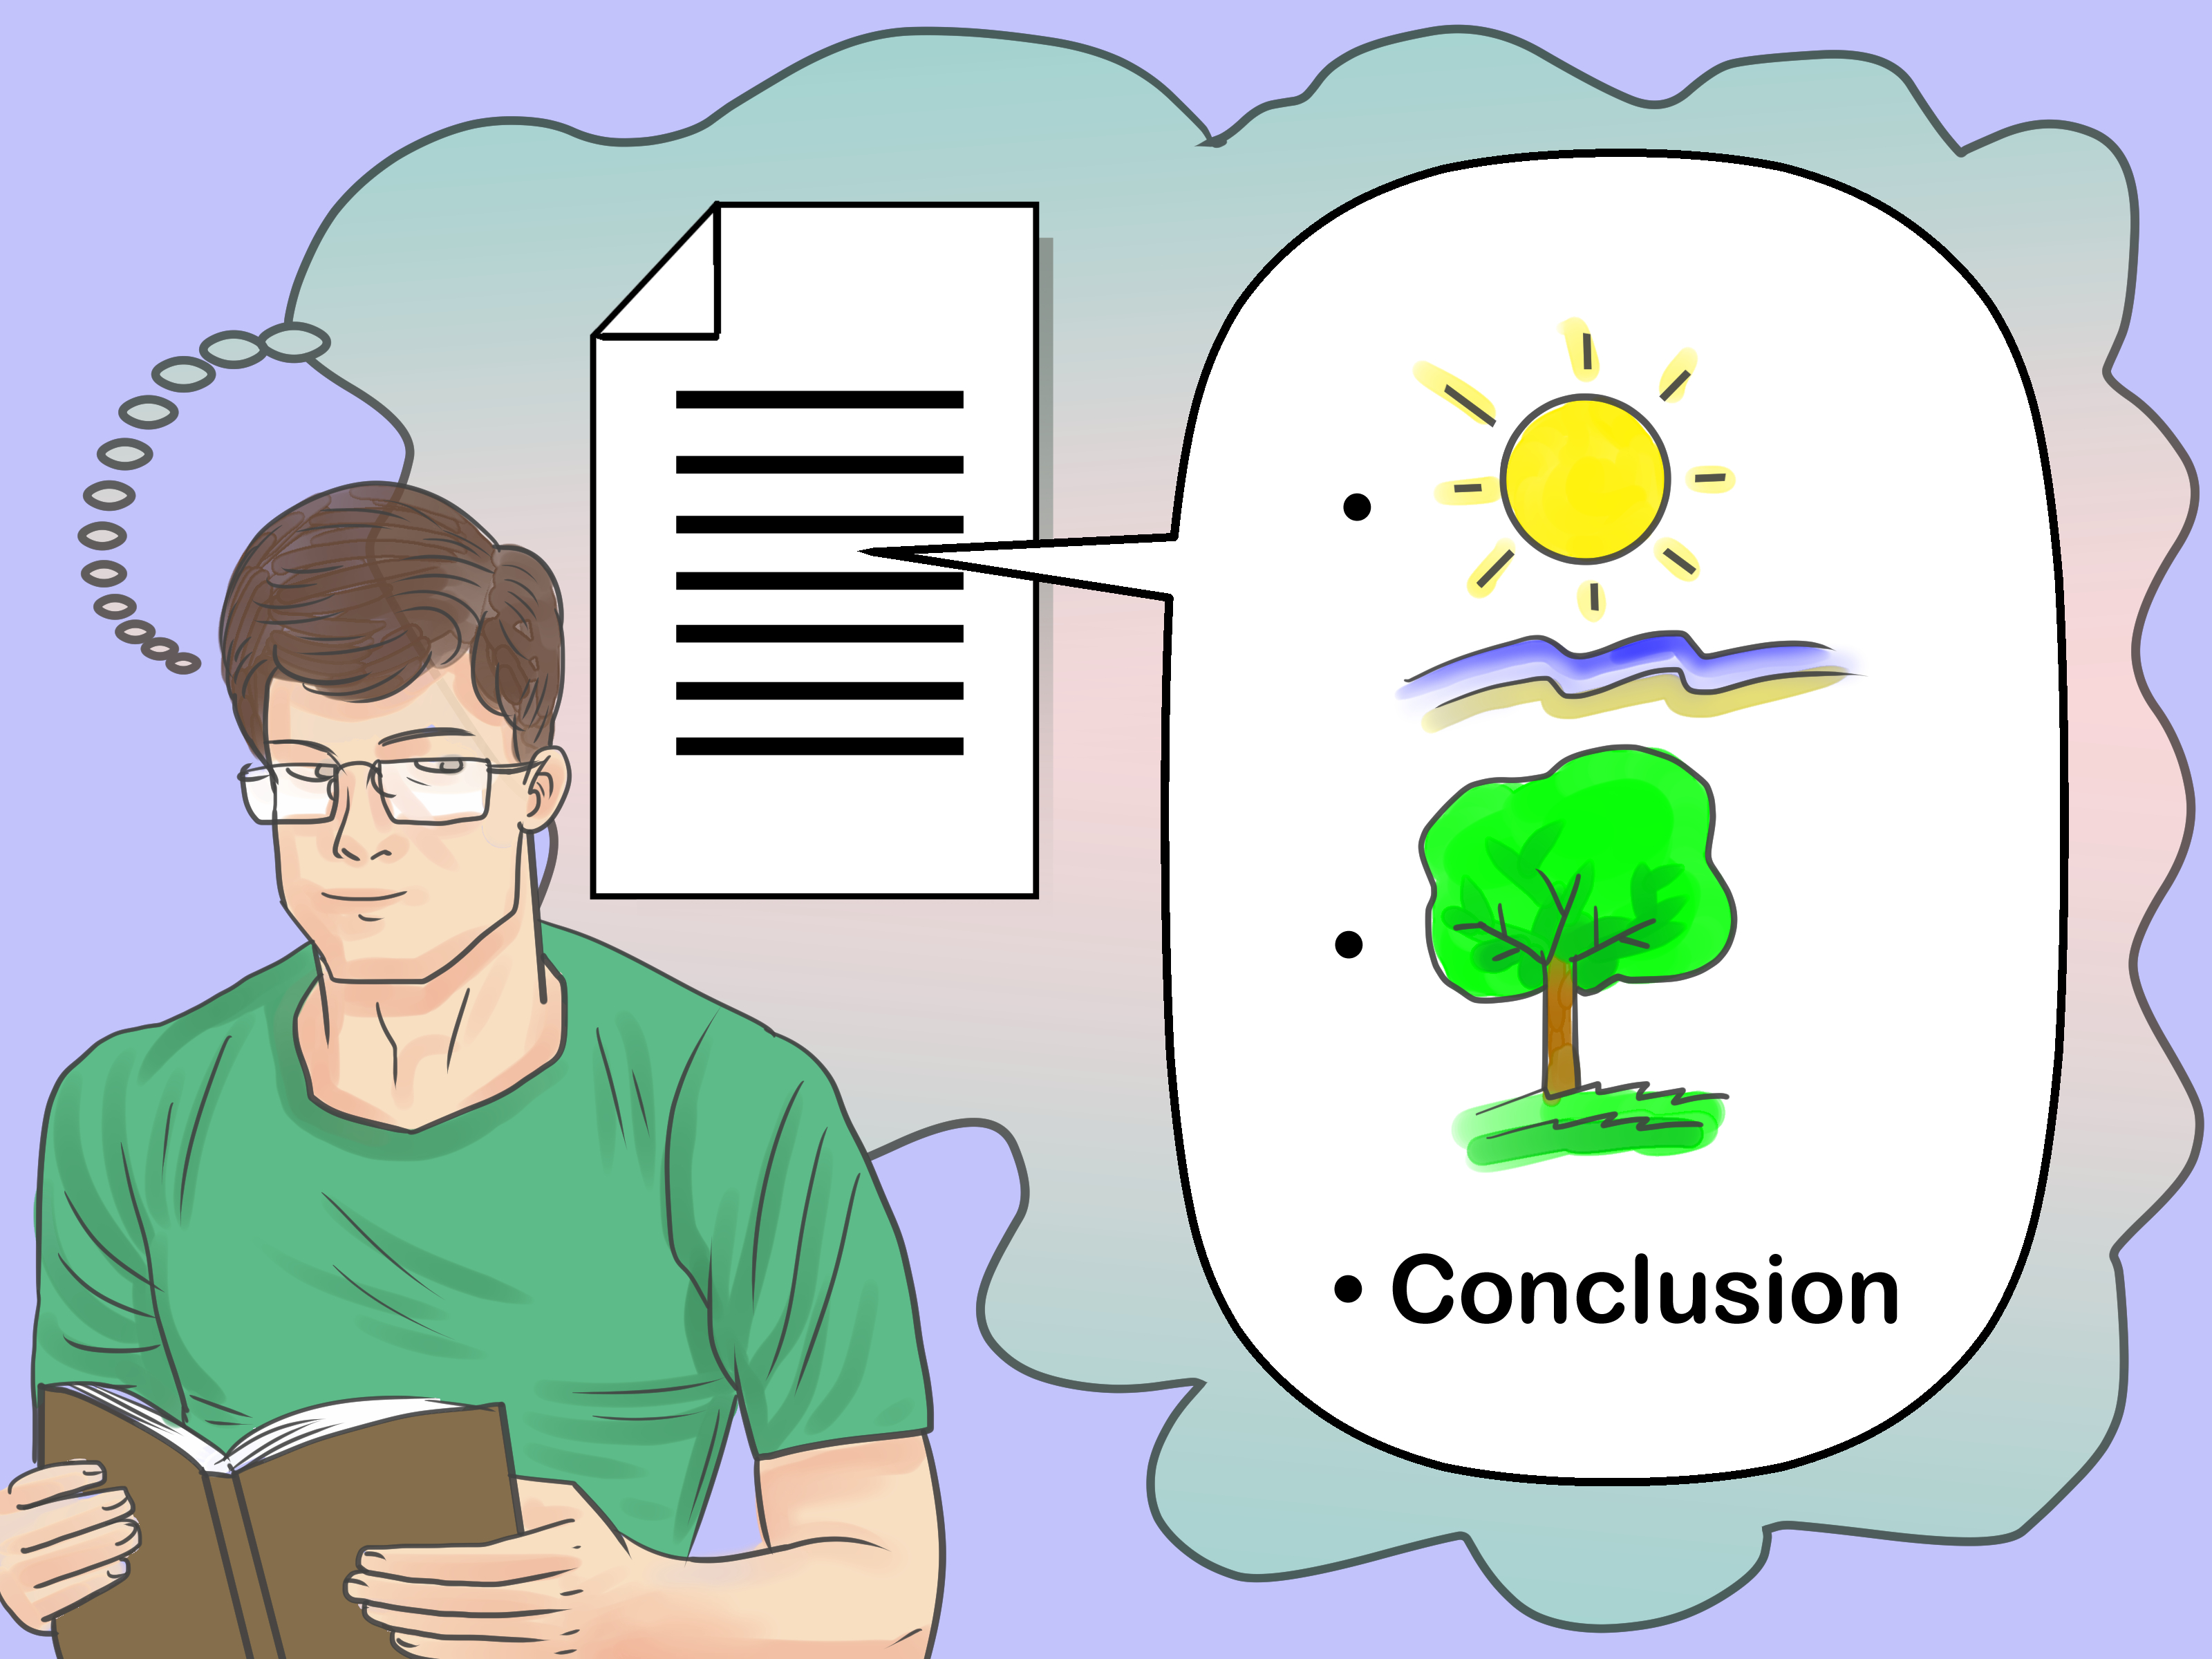 015 Compare And Contrast Essay Example Write Step Version Formidable A Apush Thesis Topics 2017 Full